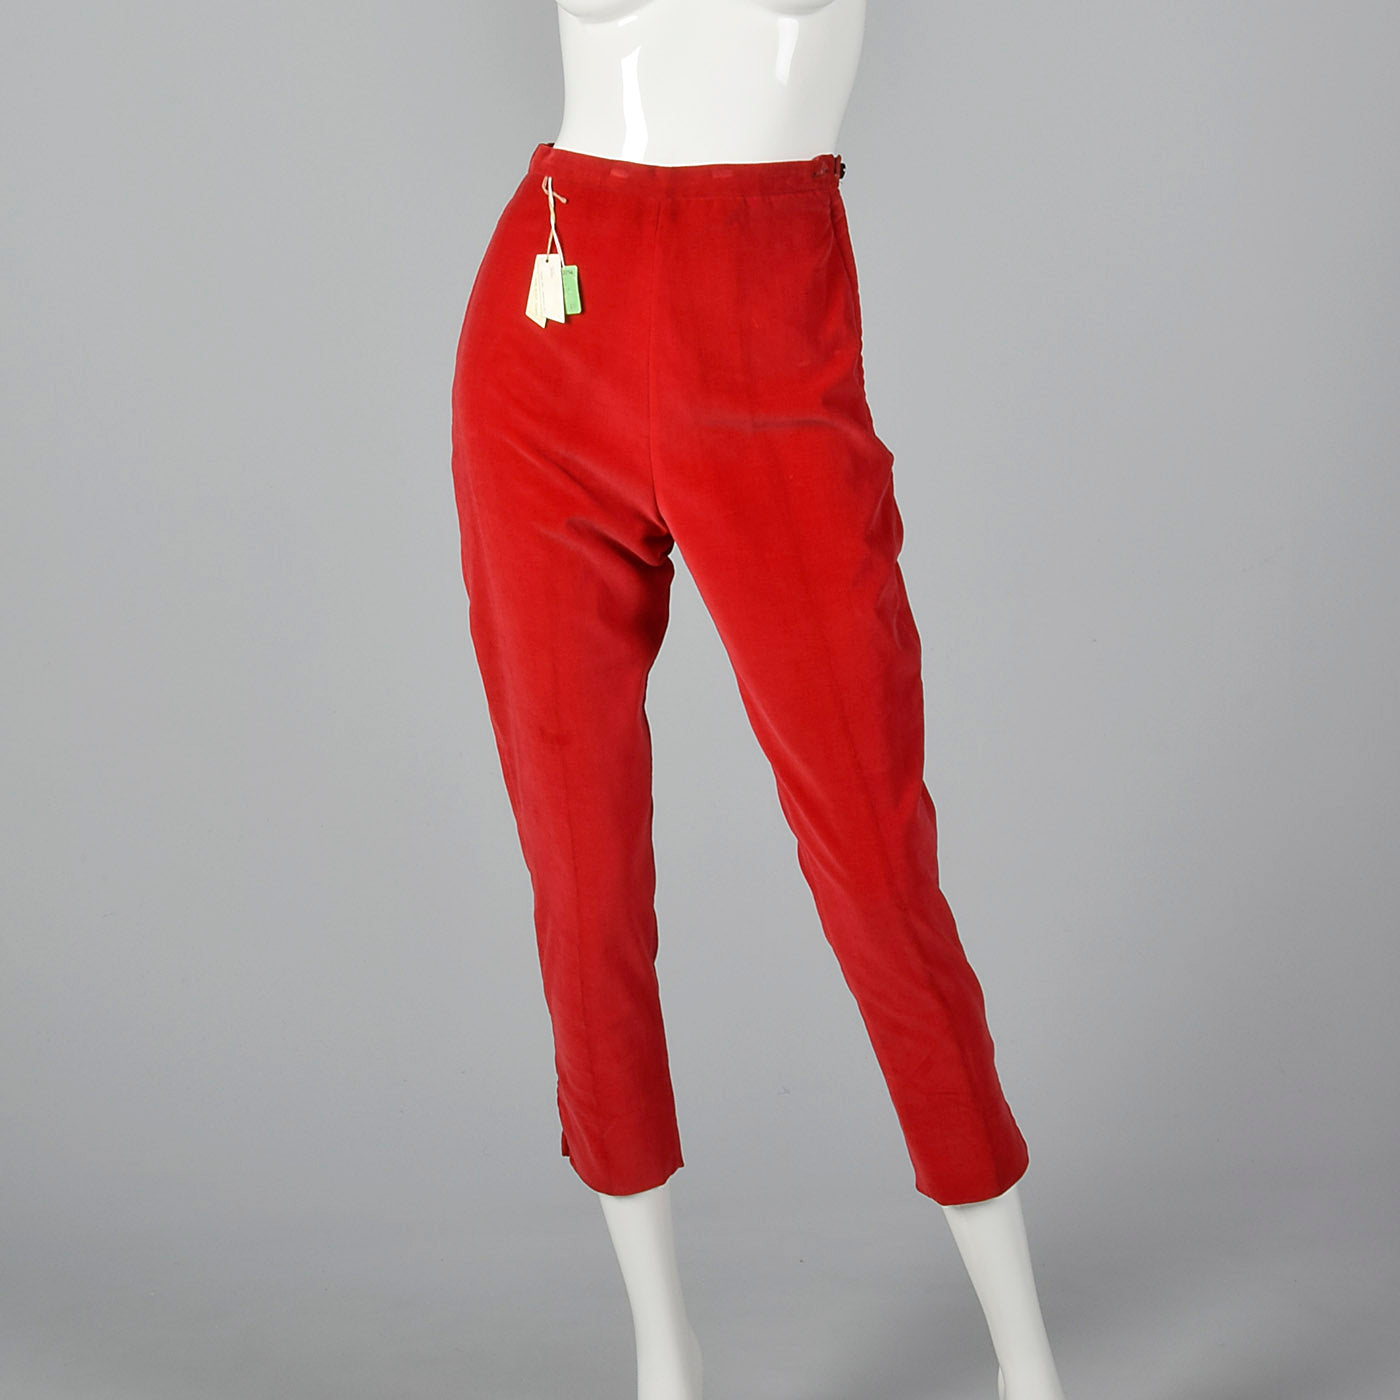 1960s Deadstock Velvet Cigarette Pants & Op Art Tunic Top Ensemble